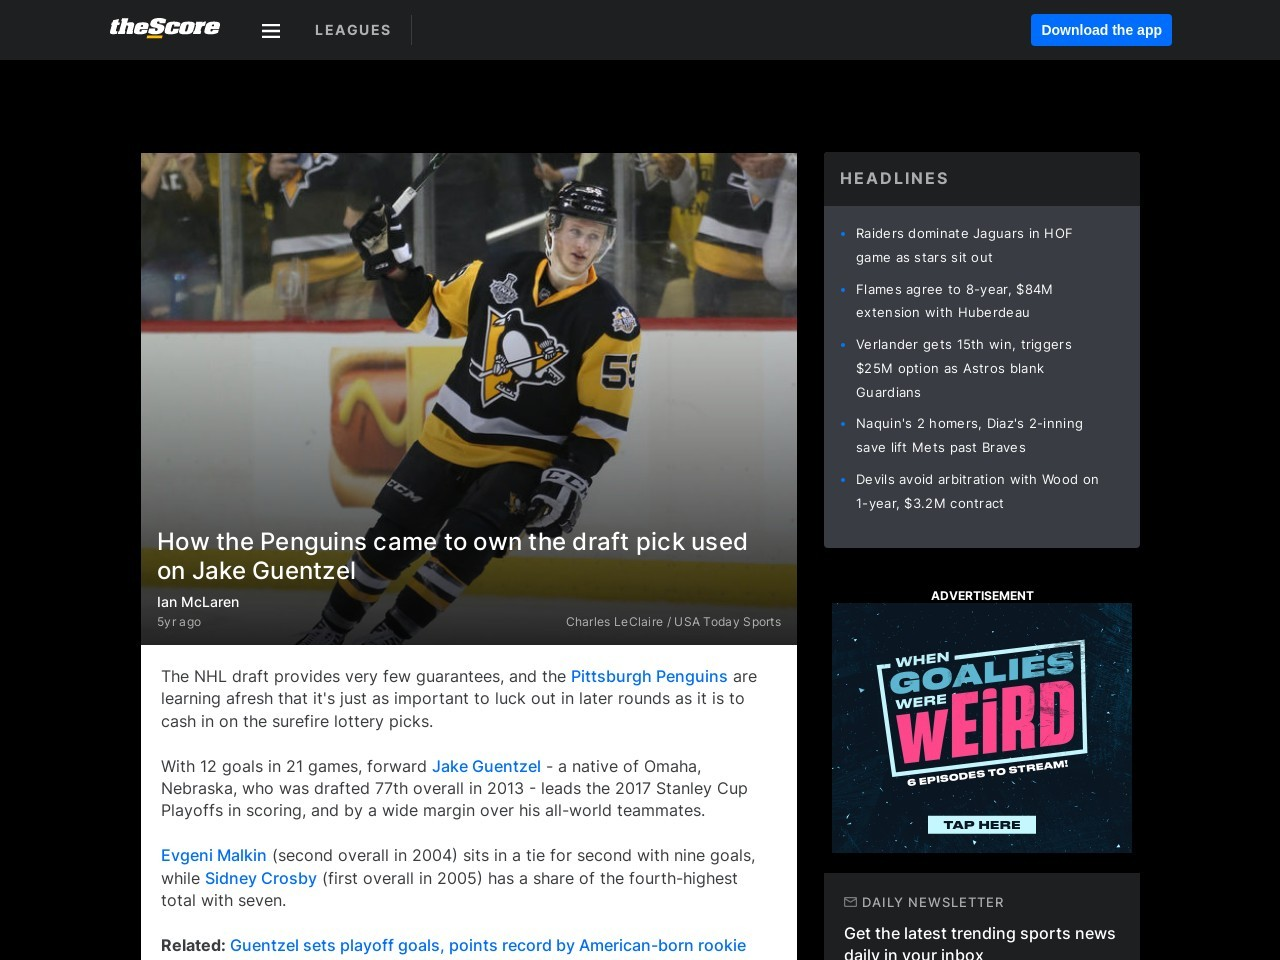 How the Penguins came to own the draft pick used on Jake Guentzel